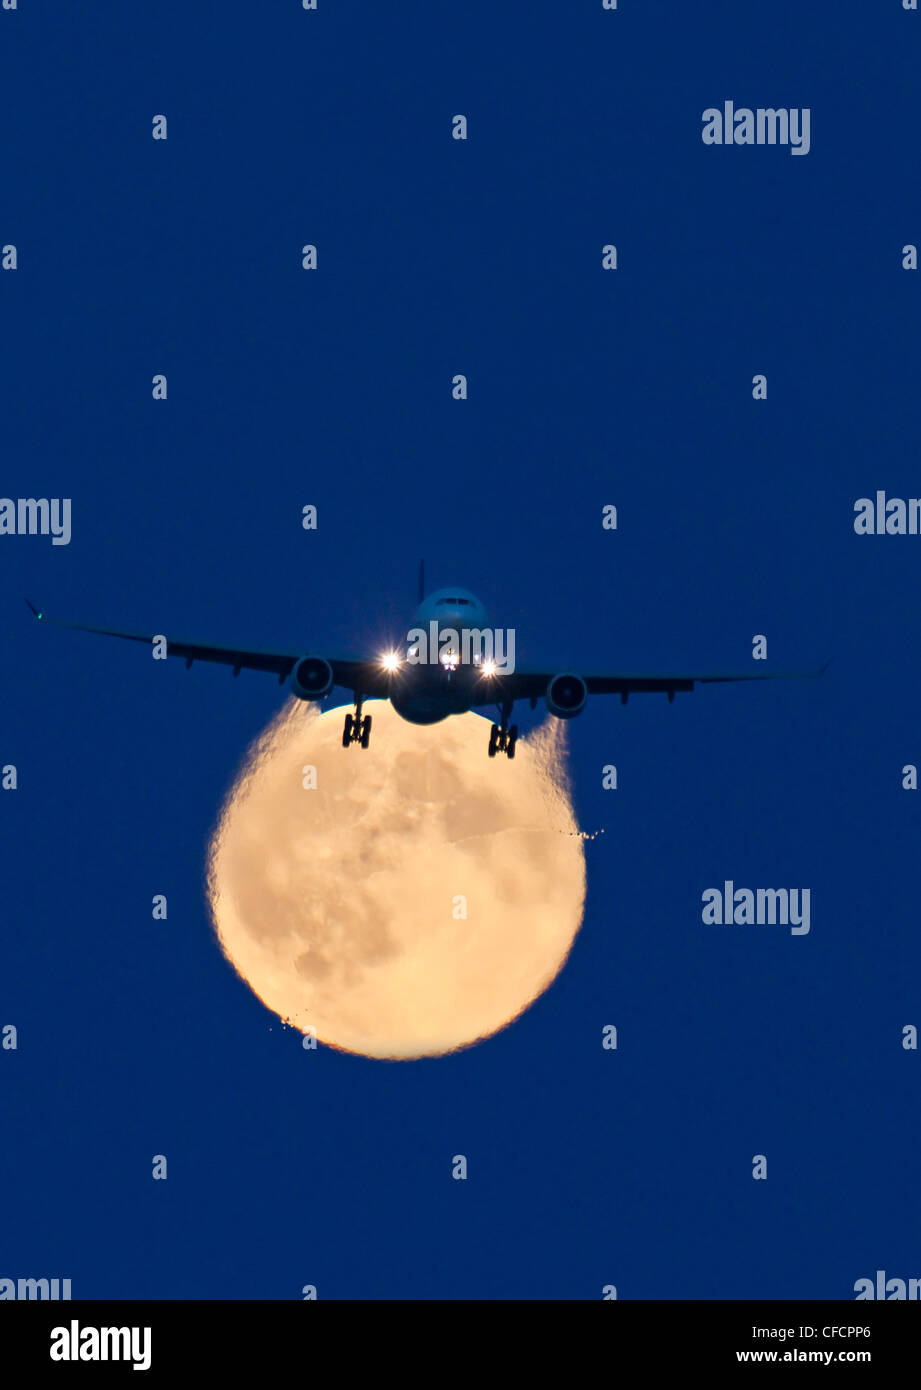 Airbus 330 passing full moon approach Vancouver - Stock Image